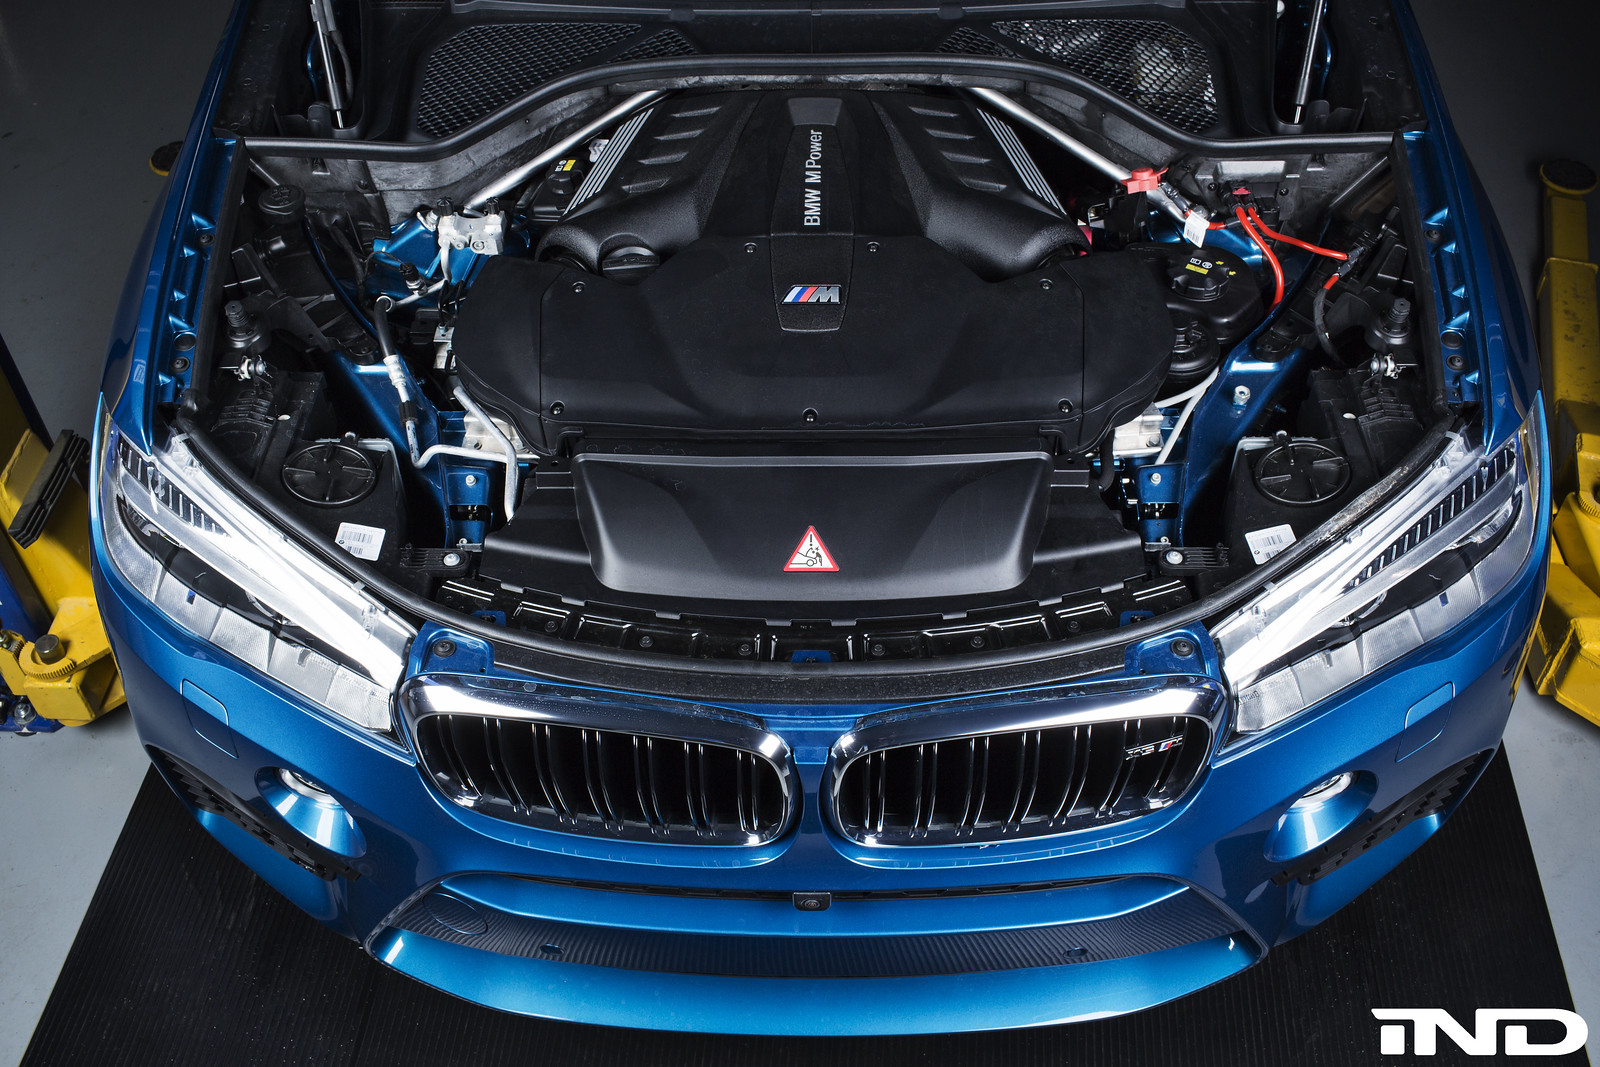 Bmw M2 Release Date >> Examining the F85 X5M: the air intake system